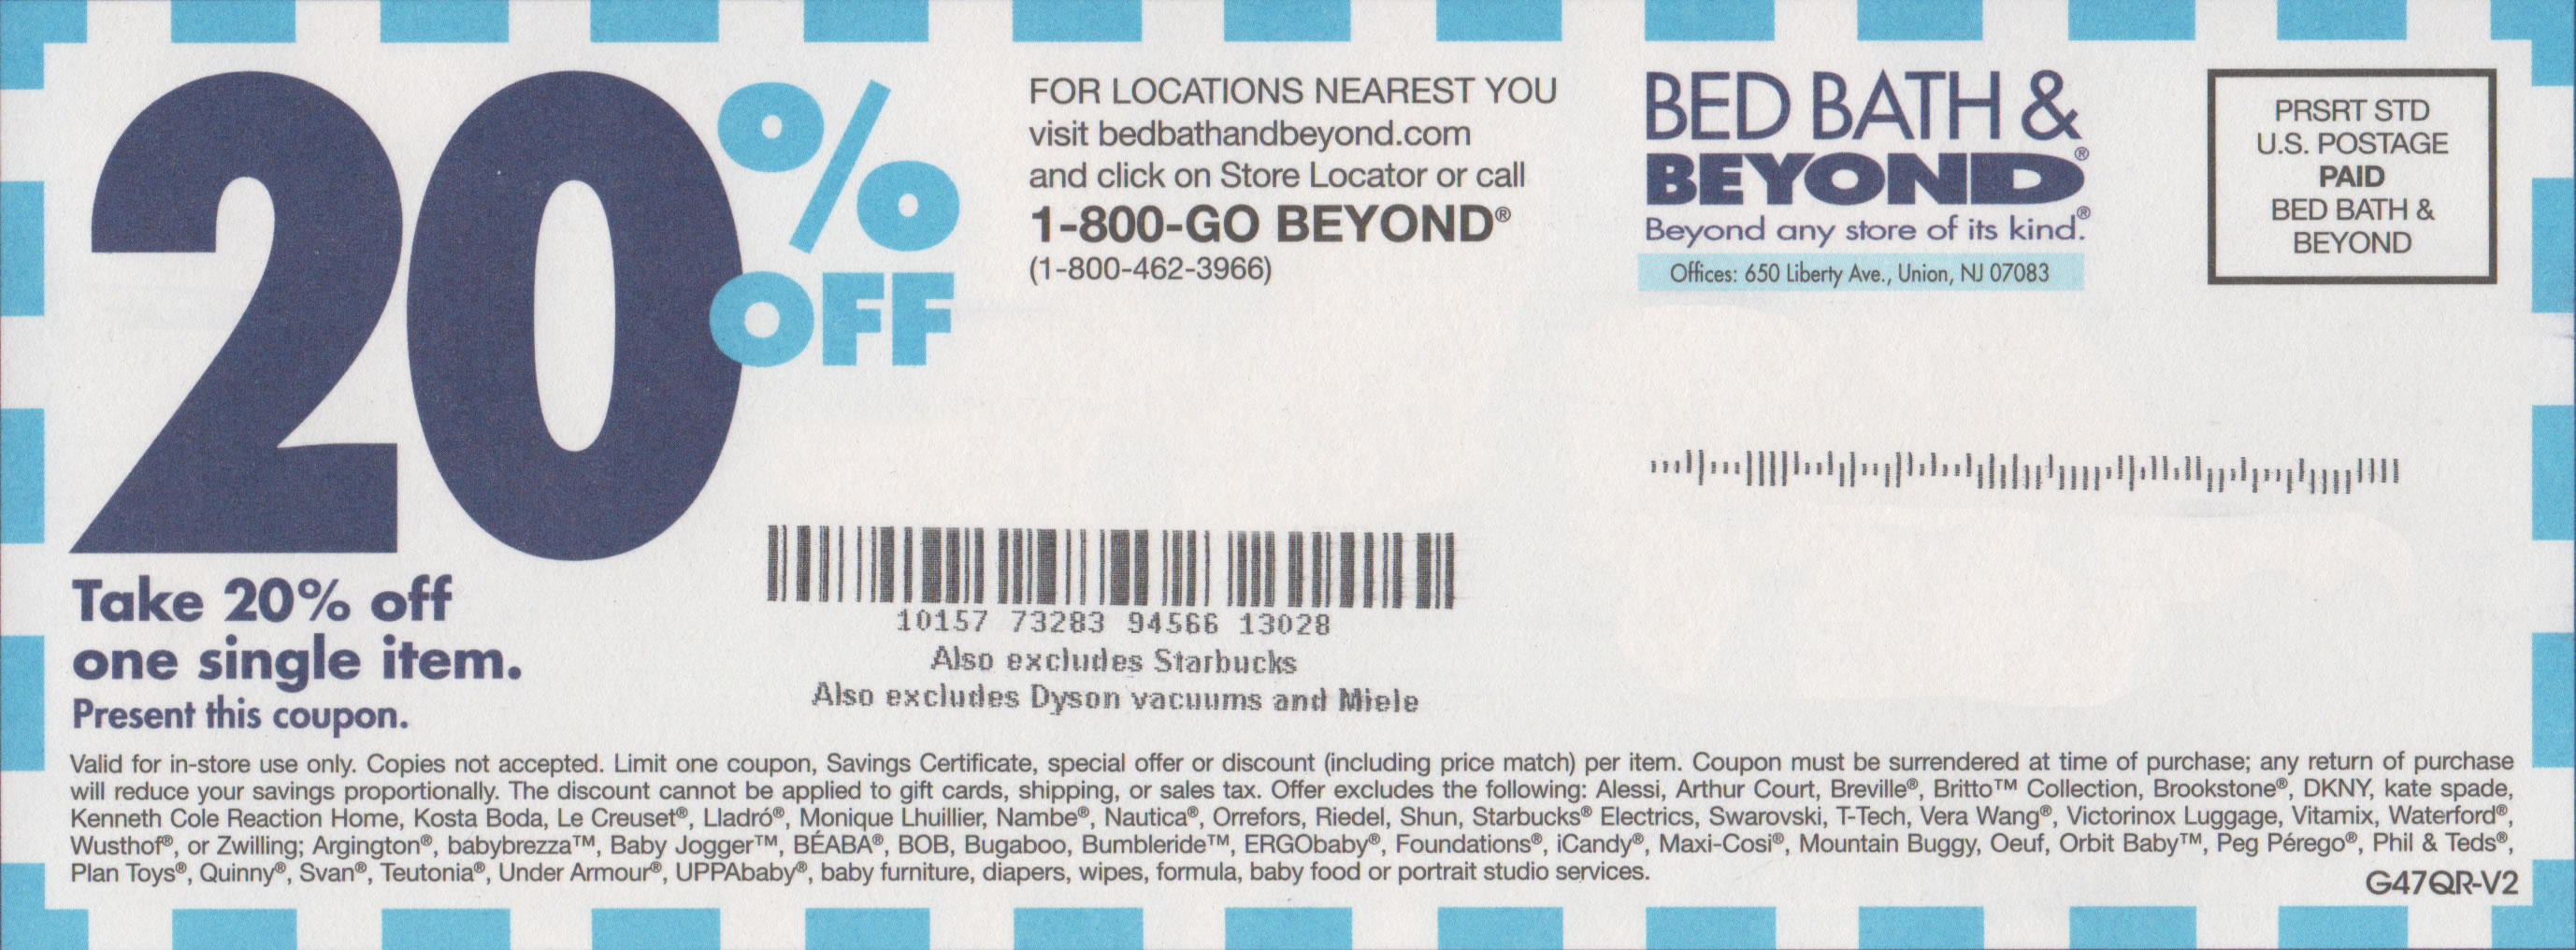 bed bath and beyond coupon code which bed bath and beyond bed bath and beyond 13146